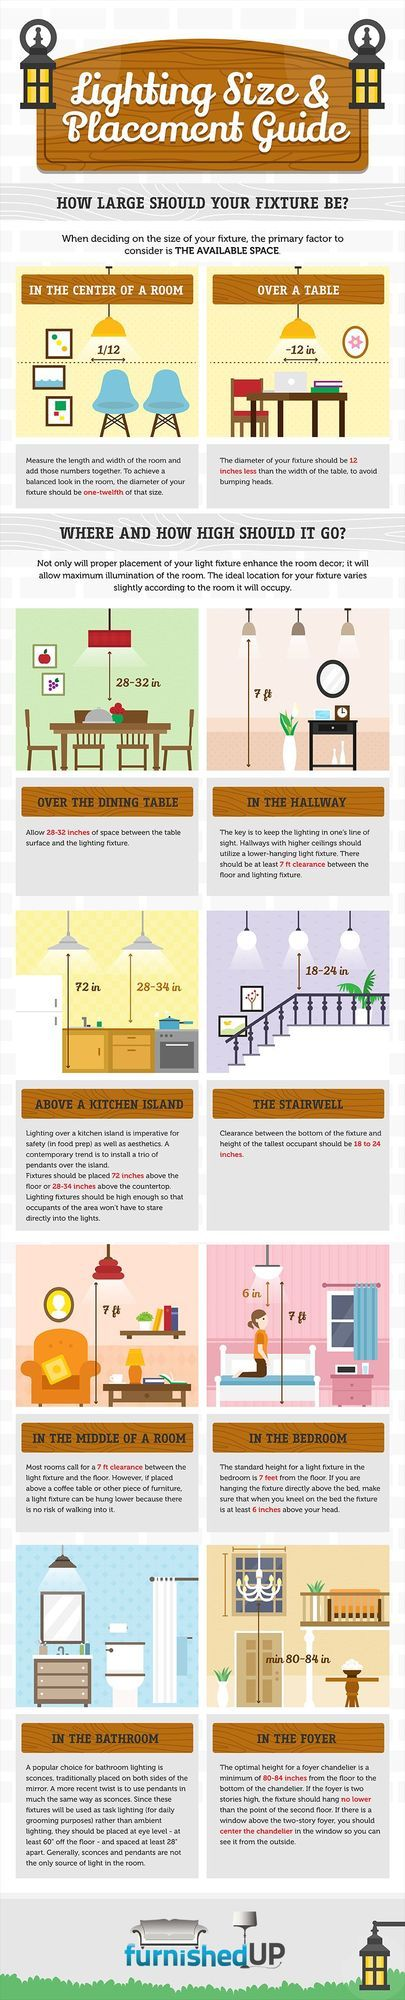 Practical Lighting Size&Placement Guide for Every Corner of the House [Infographic] (via Bloglovin.com )